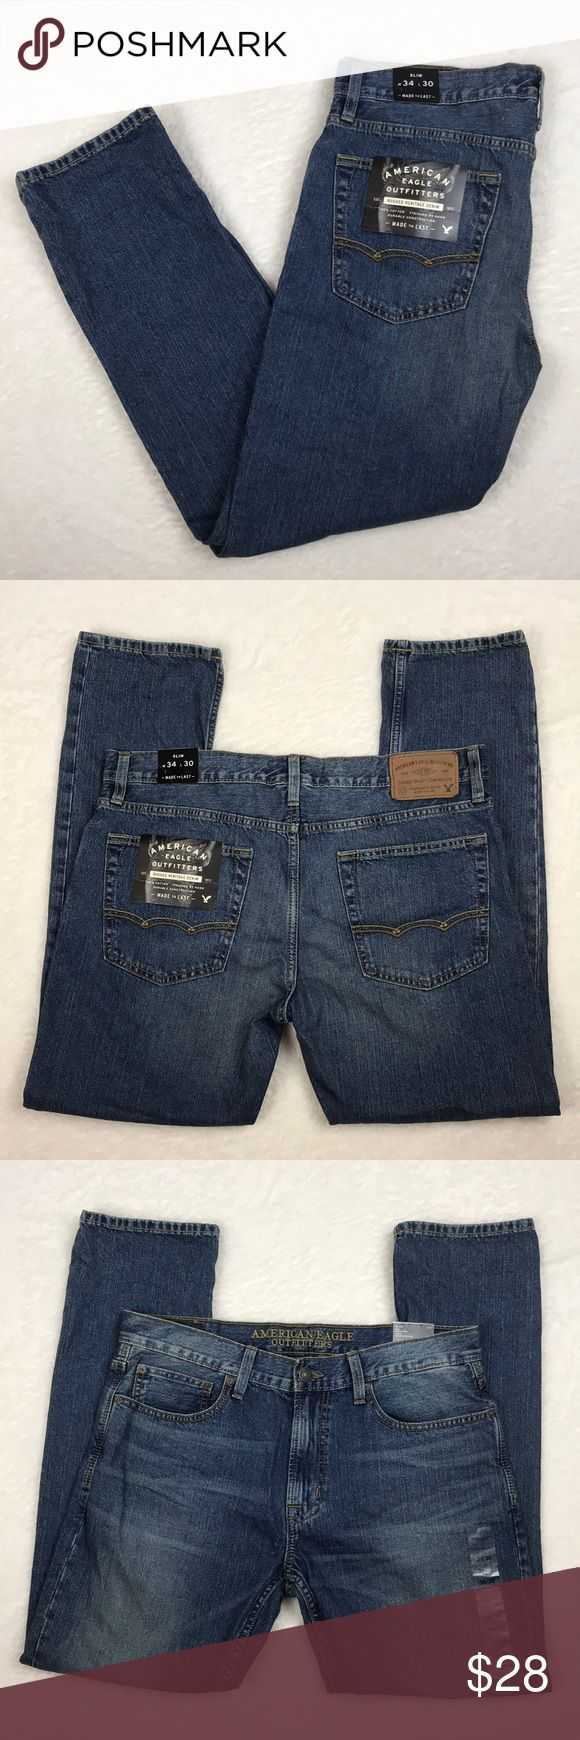 NWT American Eagle Men's Slim 34x30 Jeans NWT American Eagle Men's Slim 34x30 Jeans  Medium wash - No. 3818  100% Cotton, finished by hand American Eagle Outfitters Jeans Slim